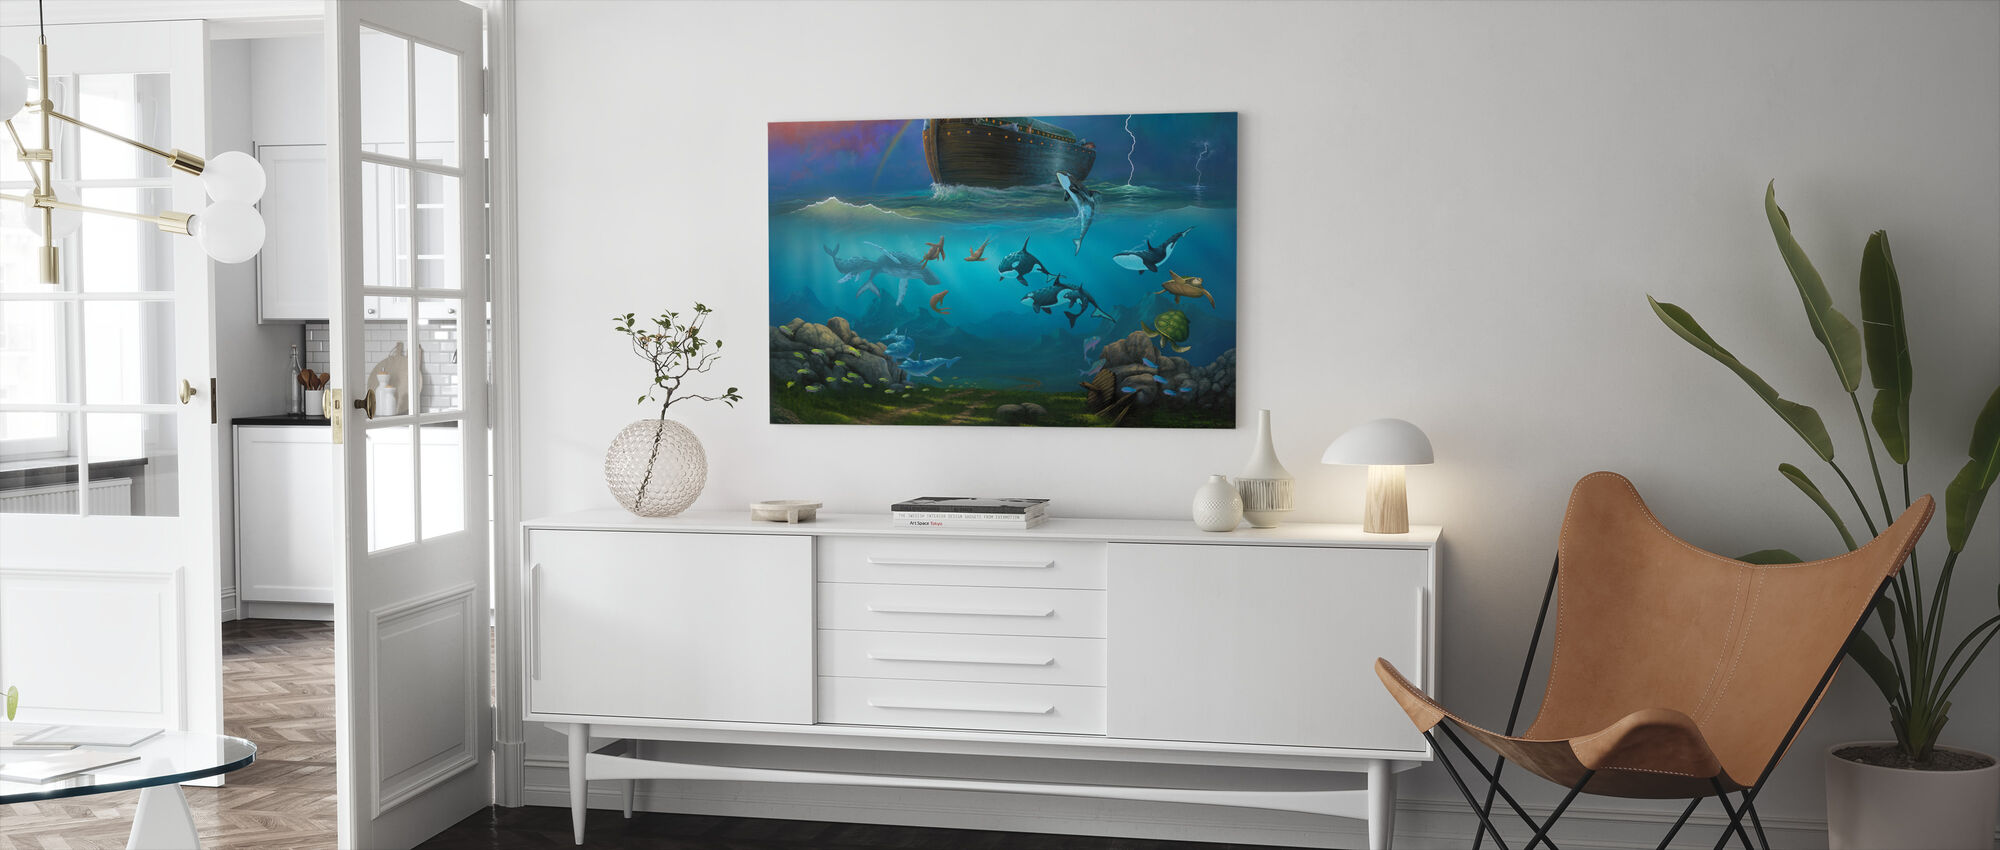 Noah's Ark - Canvas print - Living Room